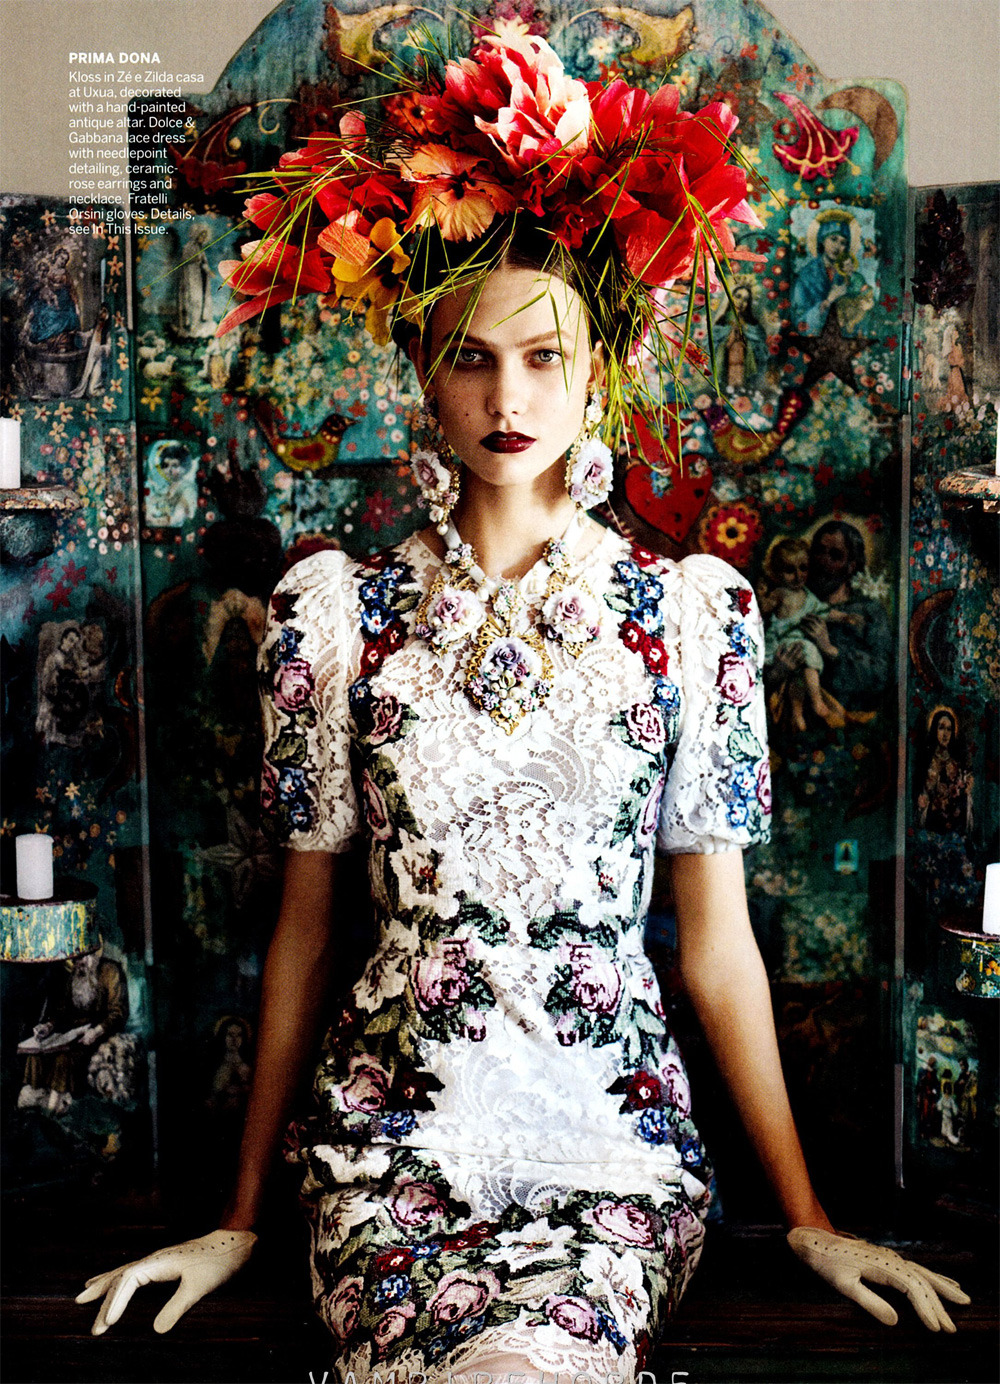 Karlie Kloss by Mario Testino for Vogue USA July 2012